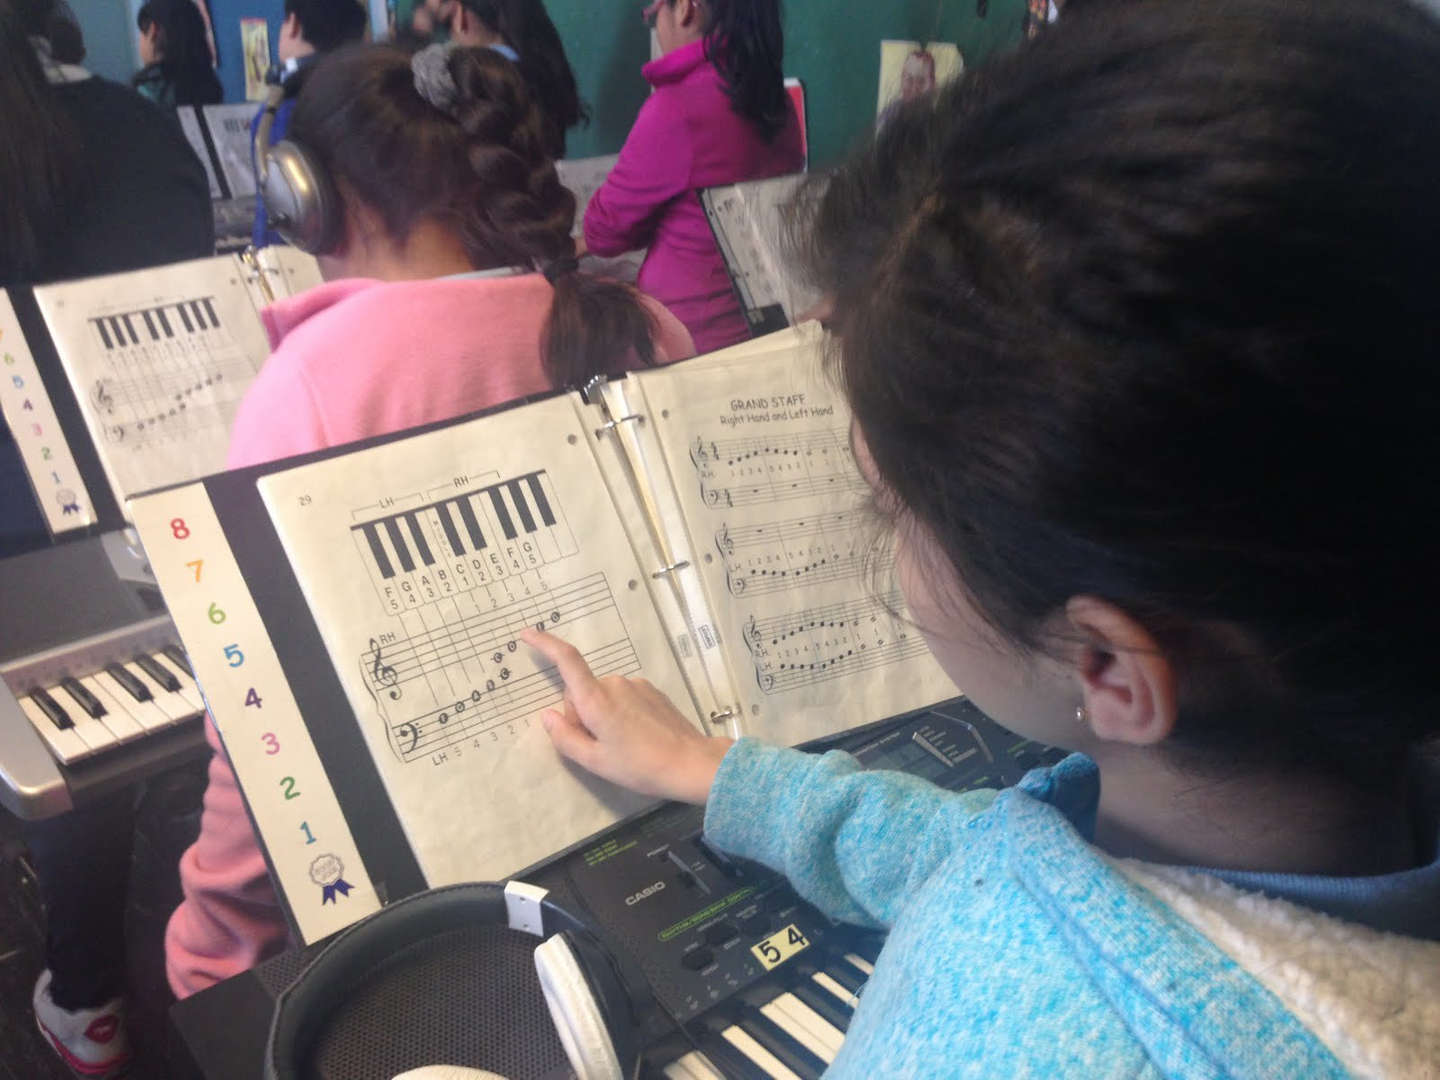 Student pointing to sheet music in class